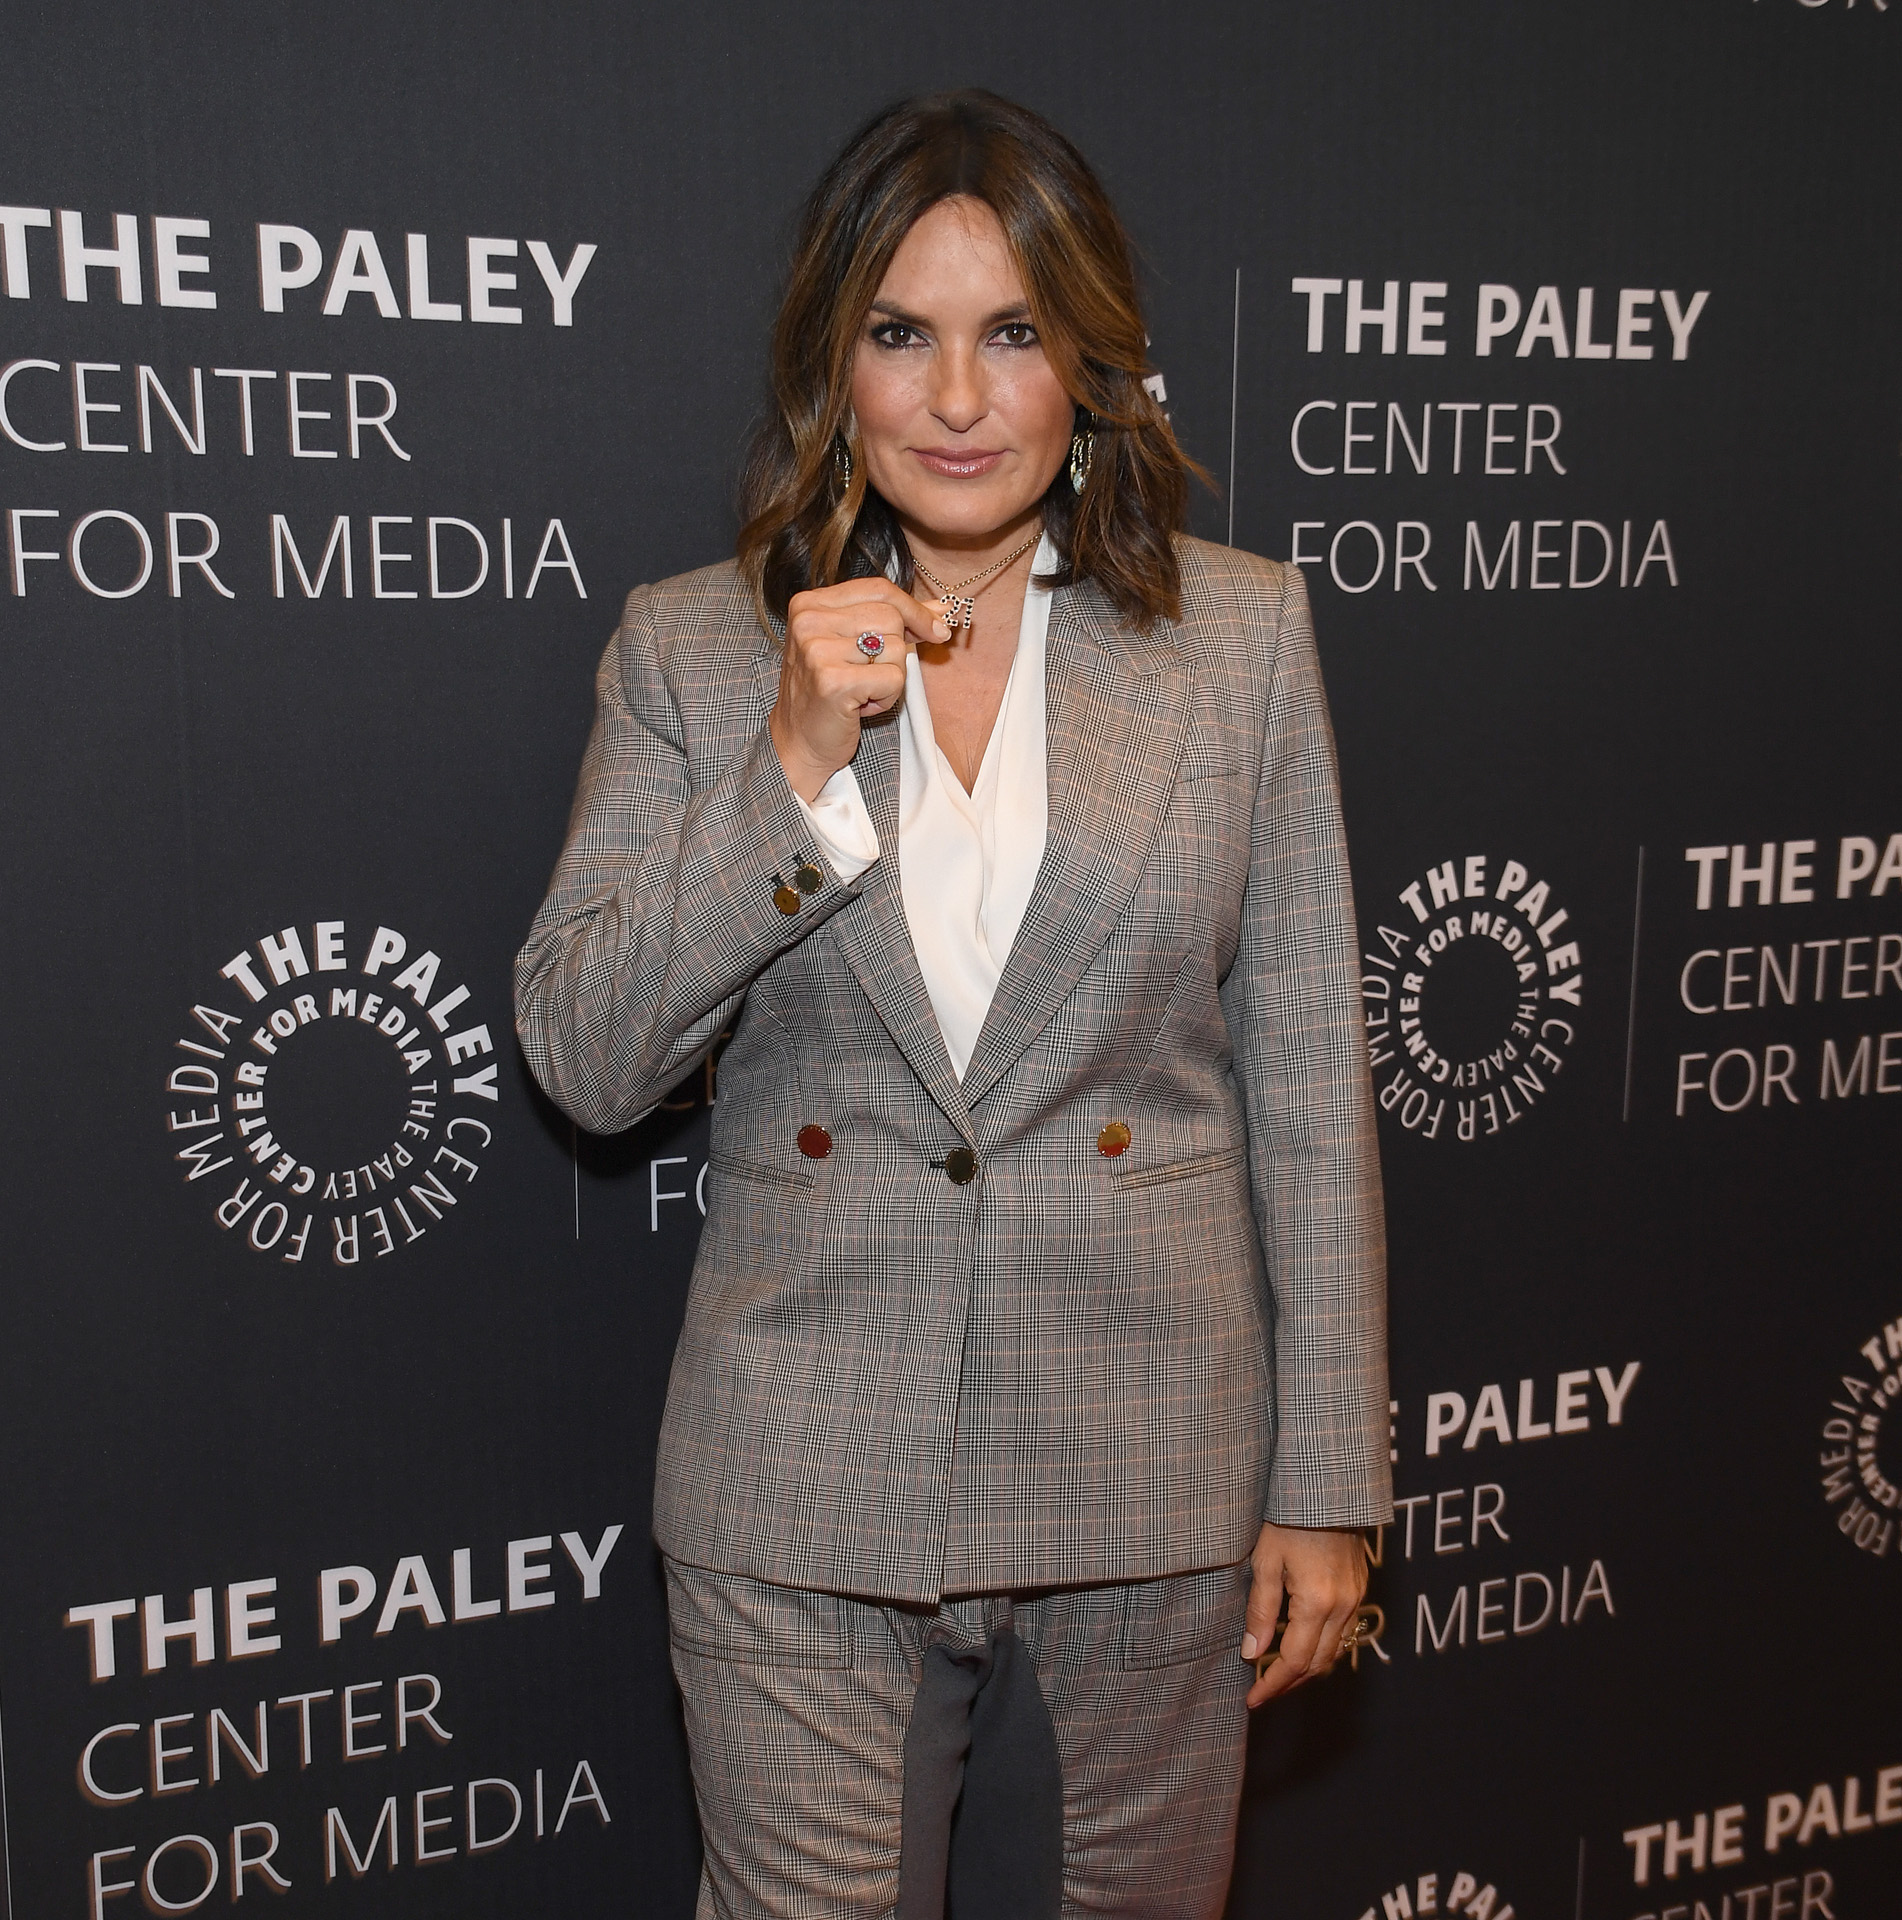 """NEW YORK, NEW YORK - SEPTEMBER 25: Mariska Hargitay attends the """"Law & Order: SVU"""" Television Milestone Celebration at The Paley Center for Media on September 25, 2019 in New York City. Dimitrios Kambouris/Getty Images/AFP"""